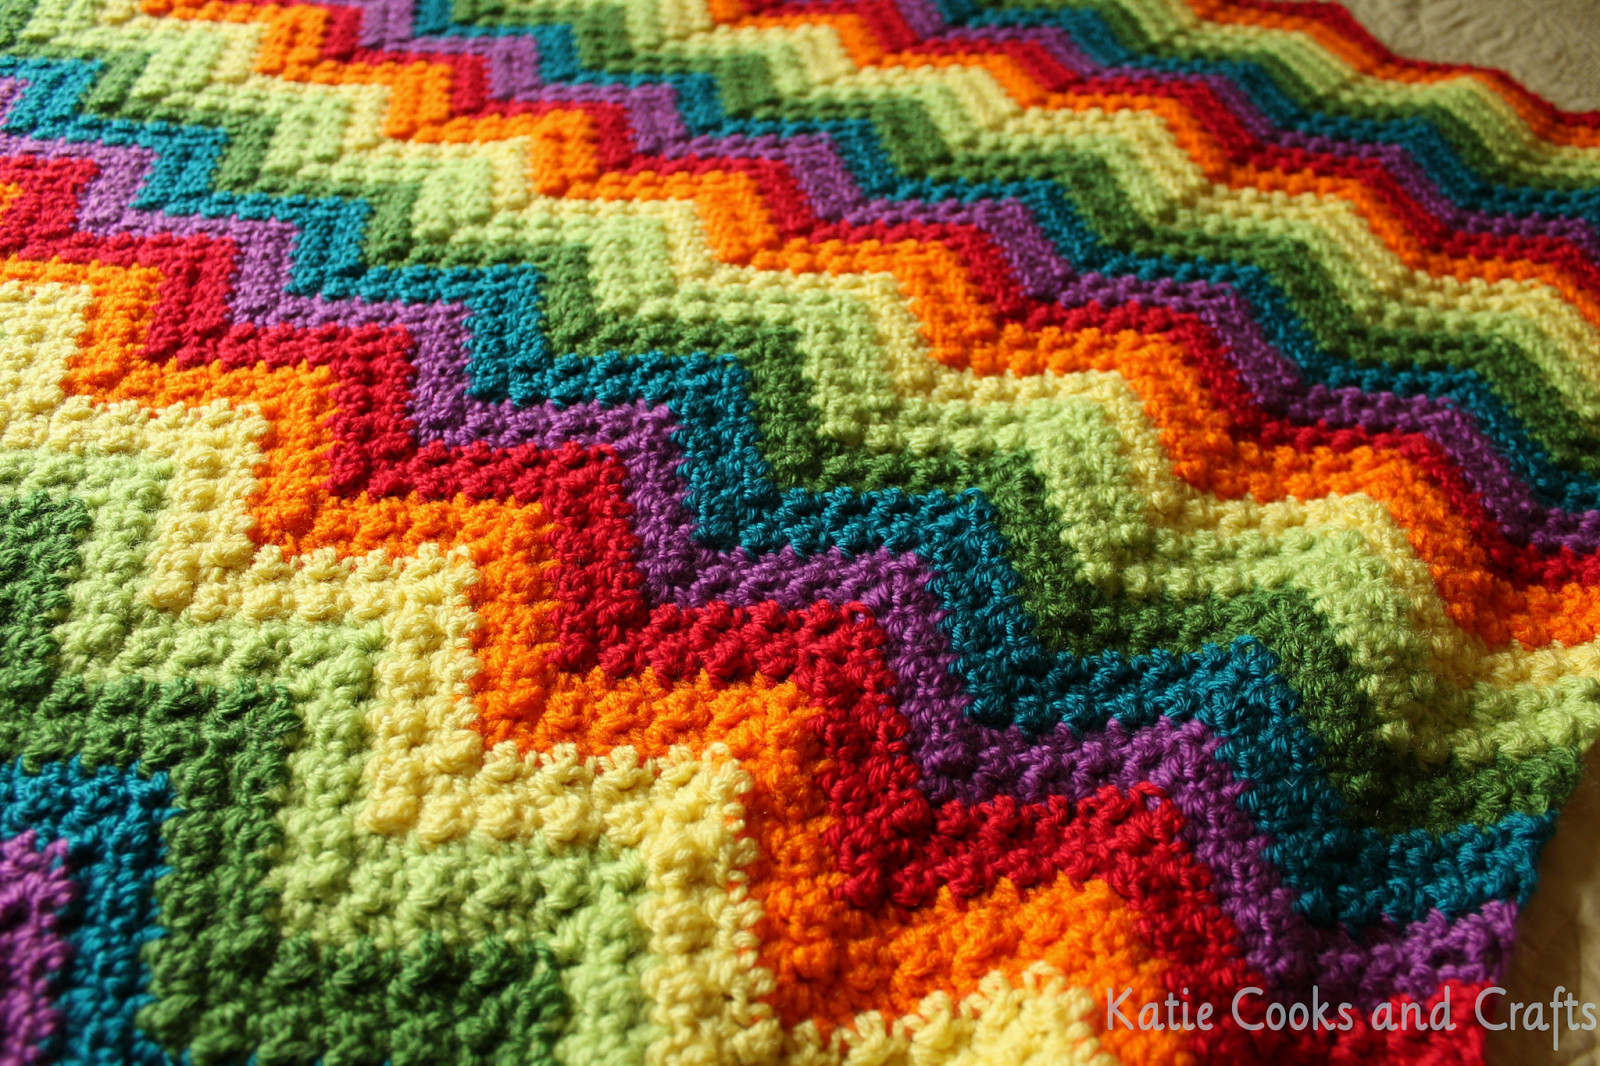 Inspirational Katie Cooks and Crafts Rumpled Ripple Rainbow Crochet Crochet Afghans Of Marvelous 47 Models Crochet Afghans